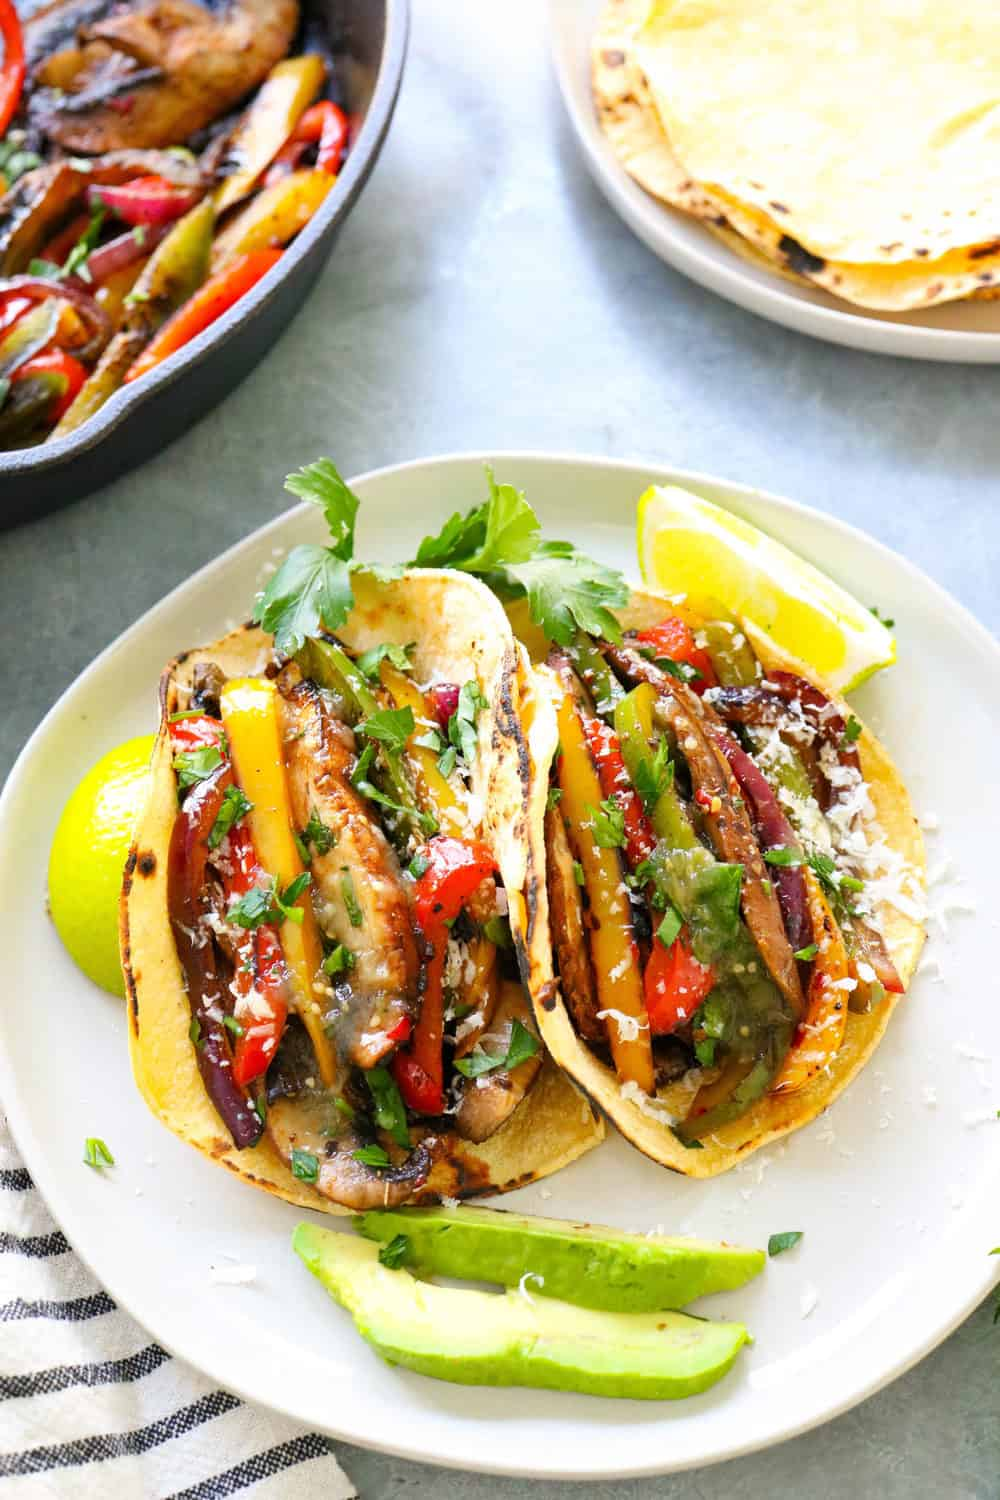 veggie fajitas on a plate with limes